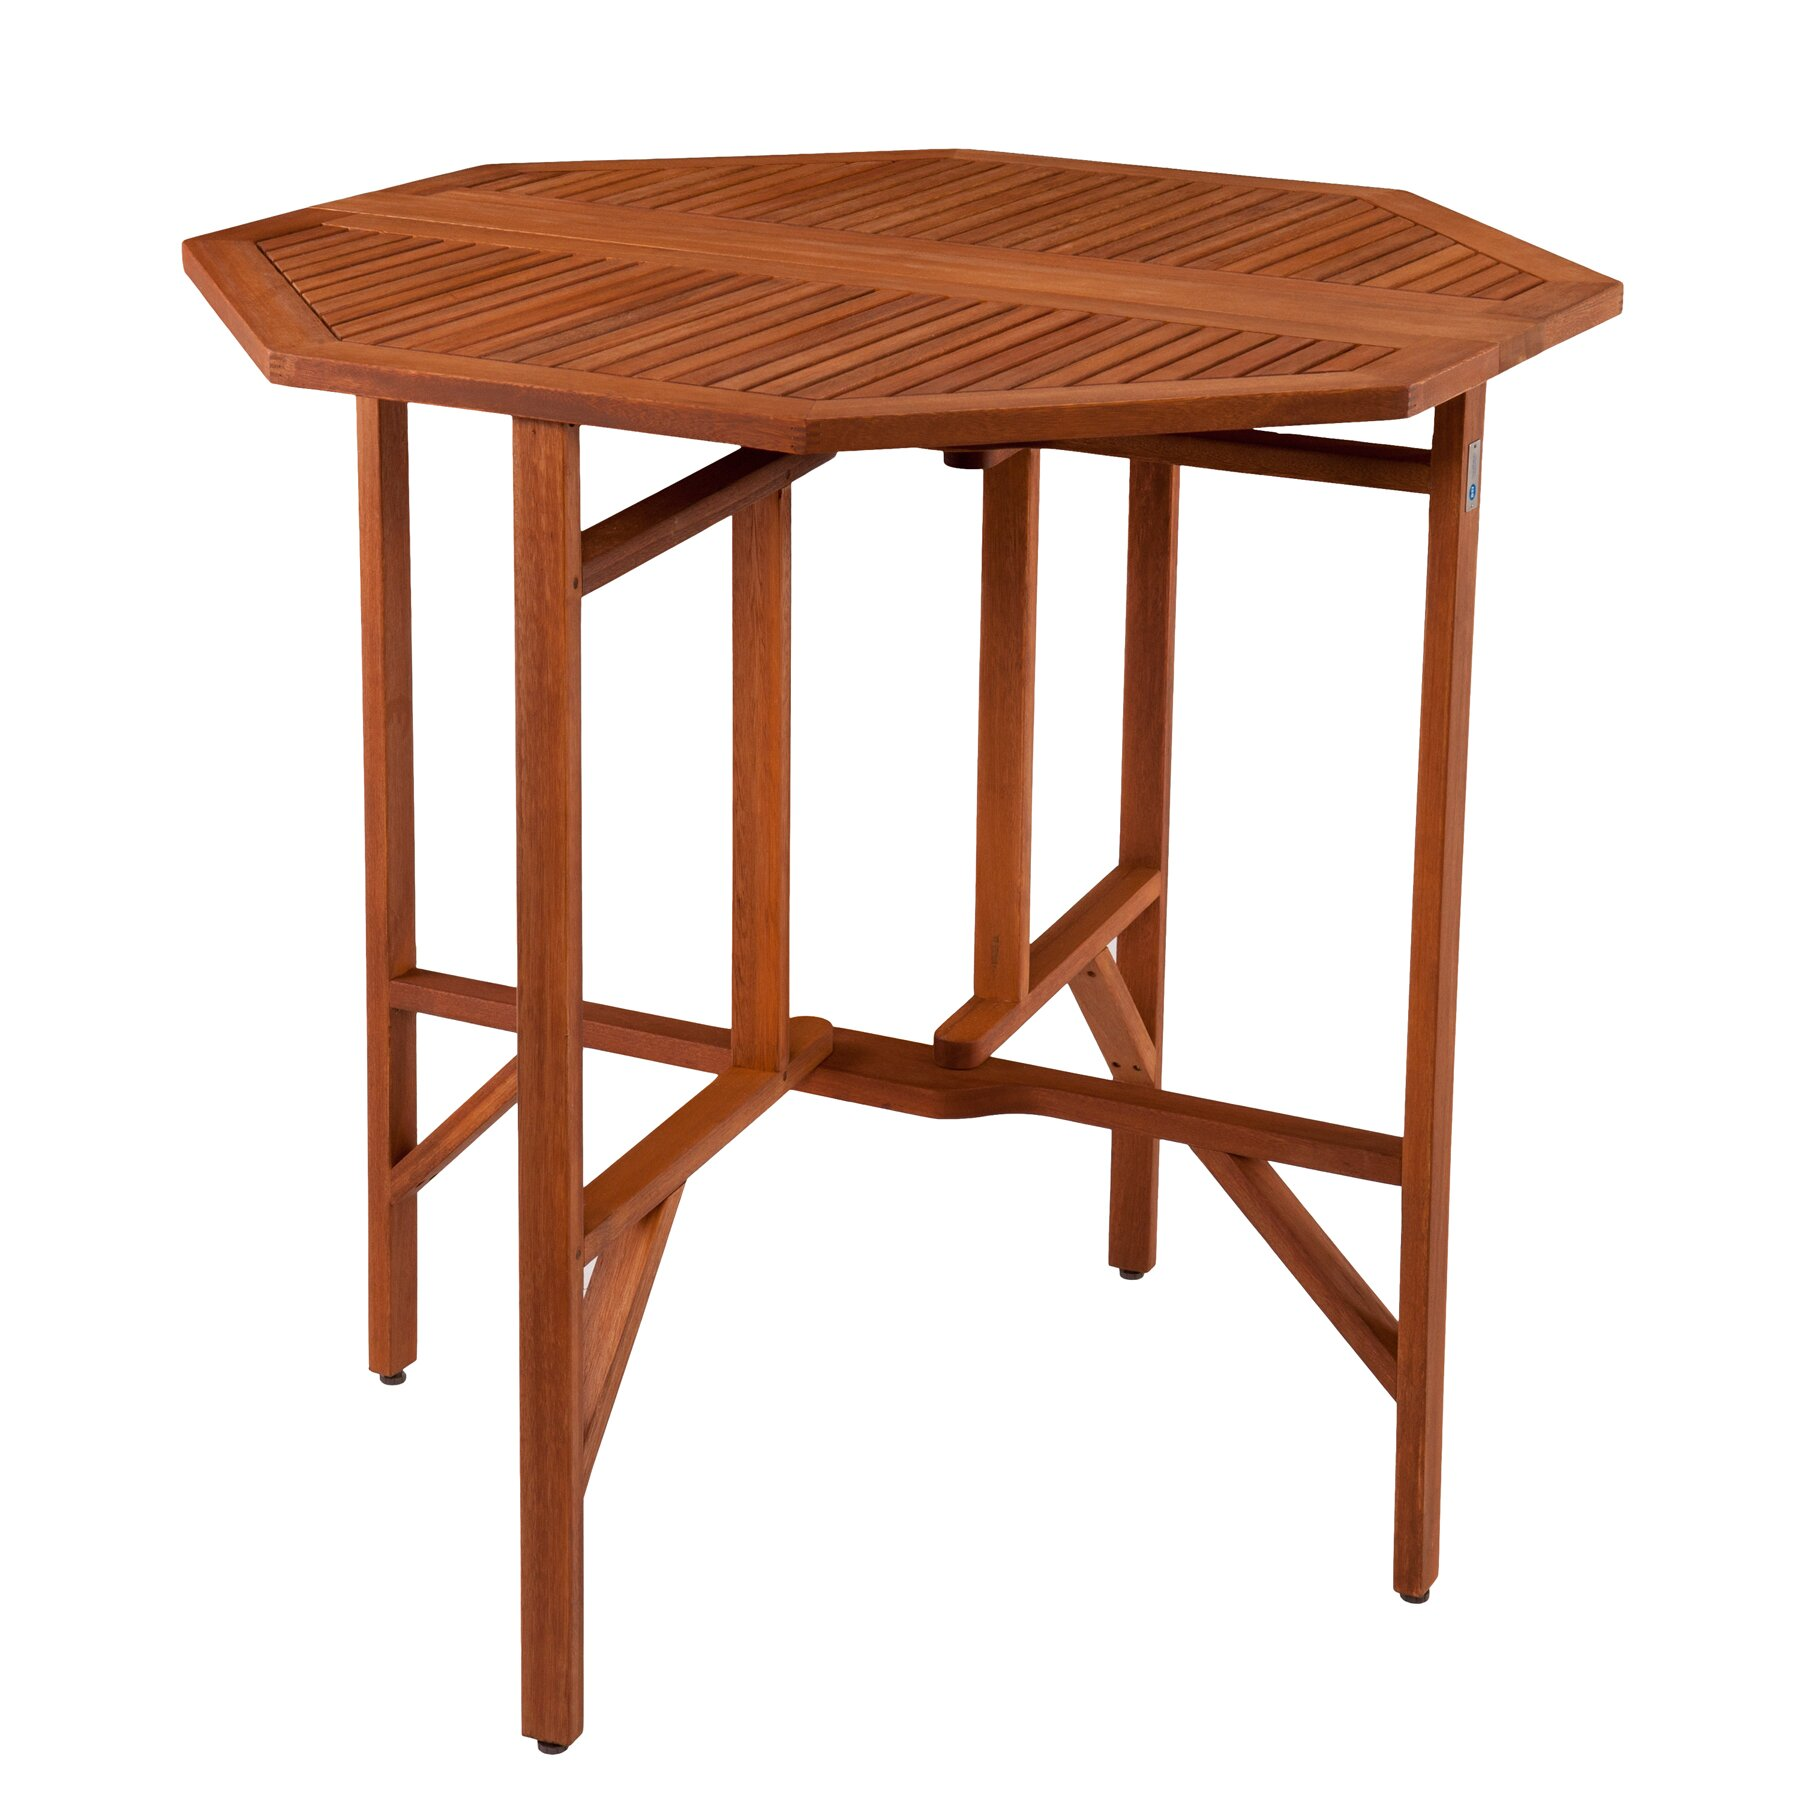 Breakwater bay outdoor dining table wayfair for Outdoor dining